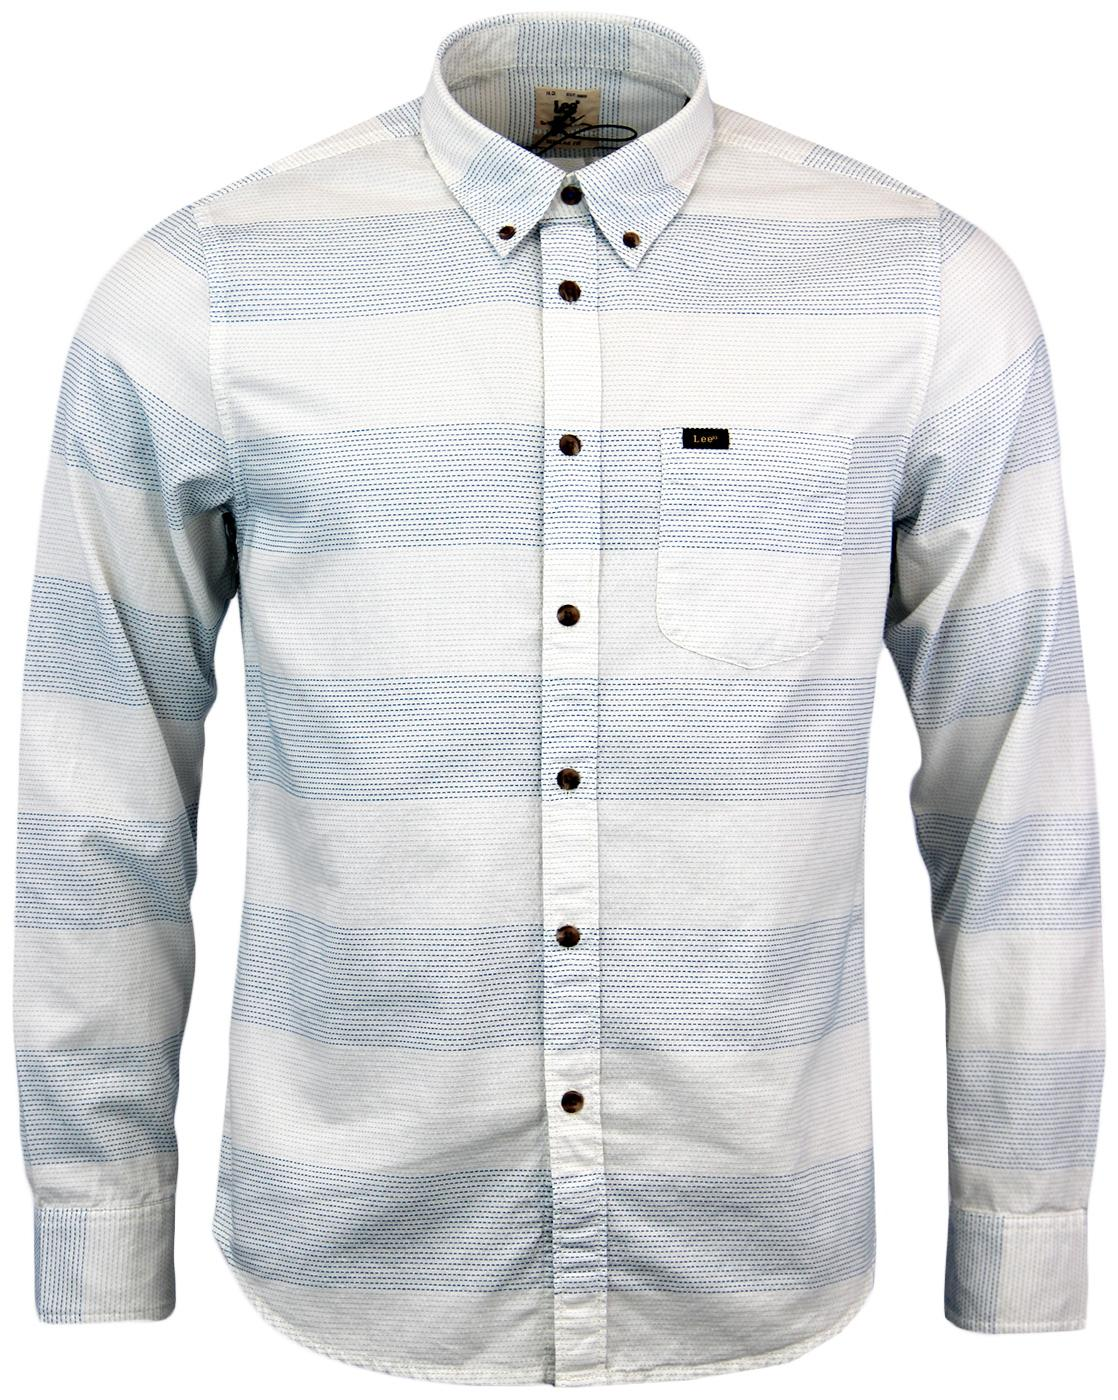 LEE Retro Mod Button Down Cloud Dancer Shirt W/B